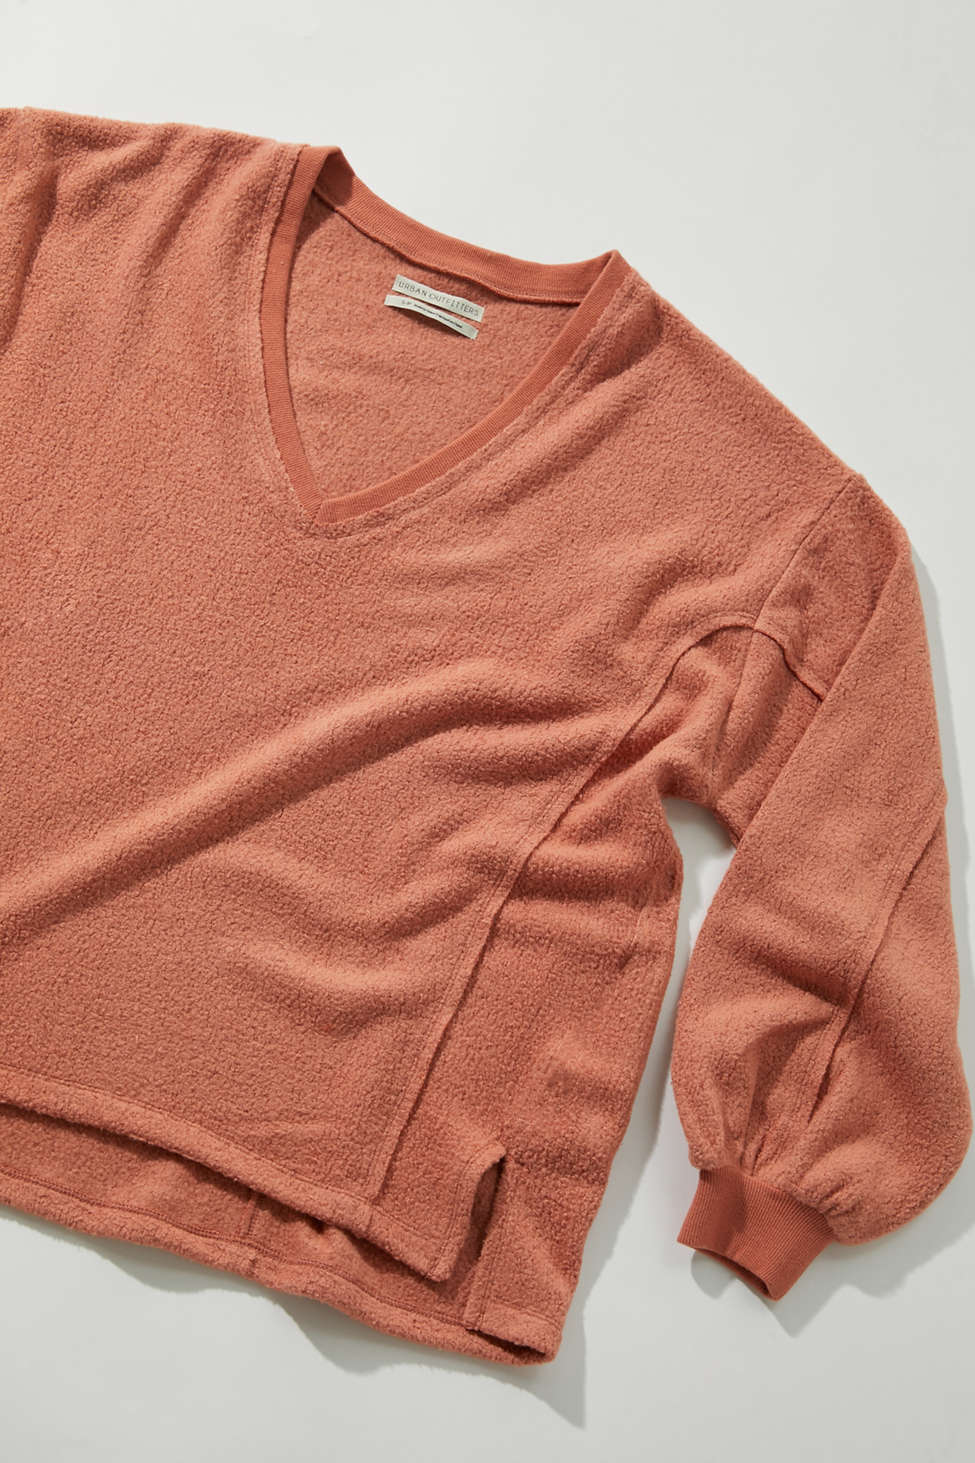 UO Lillu V-Neck Pullover Top | Urban Outfitters